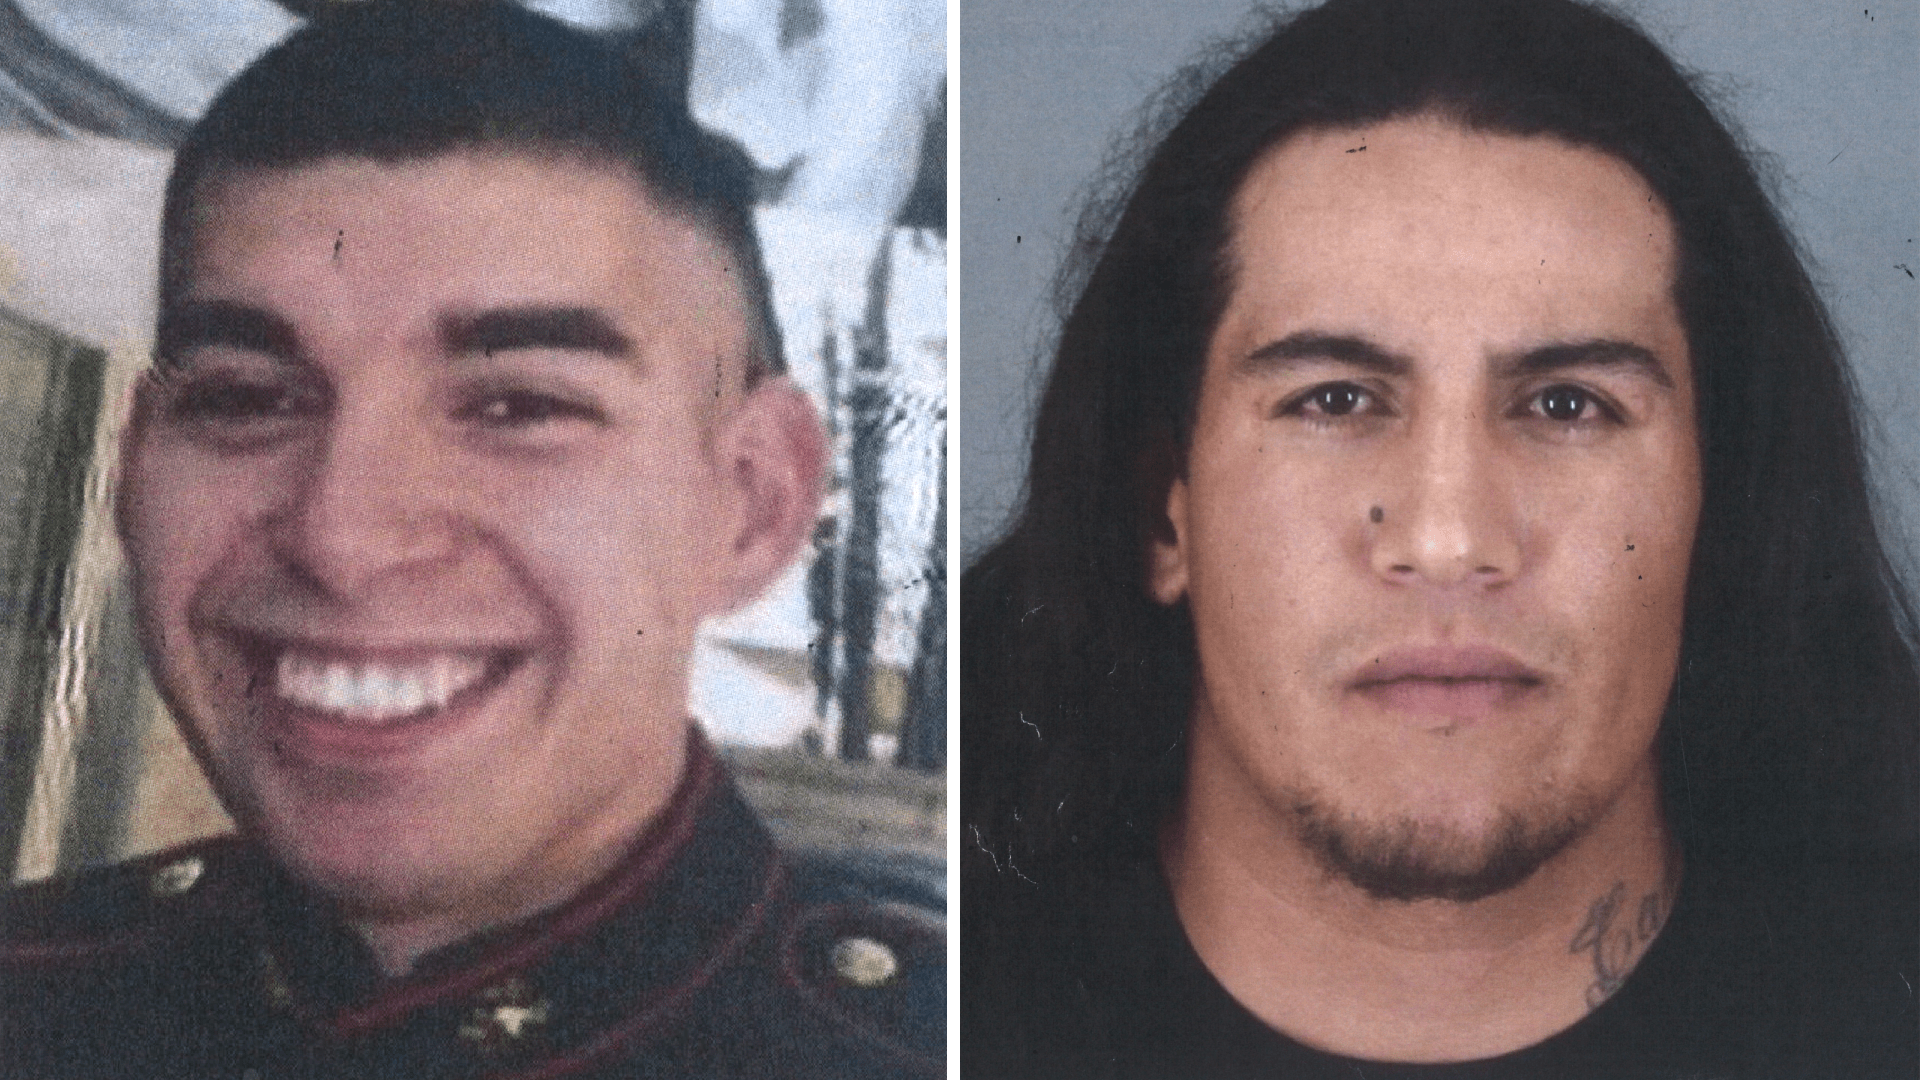 On the left, an undated photo shows Nicholas Males, 28-year-old U.S. Marine Corps veteran and father of two who was stabbed to death in Hemet in 2016. The photo on the right shows 35-year-old Robert Herrera Ramirez, the man arrested on suspicion of killing him.